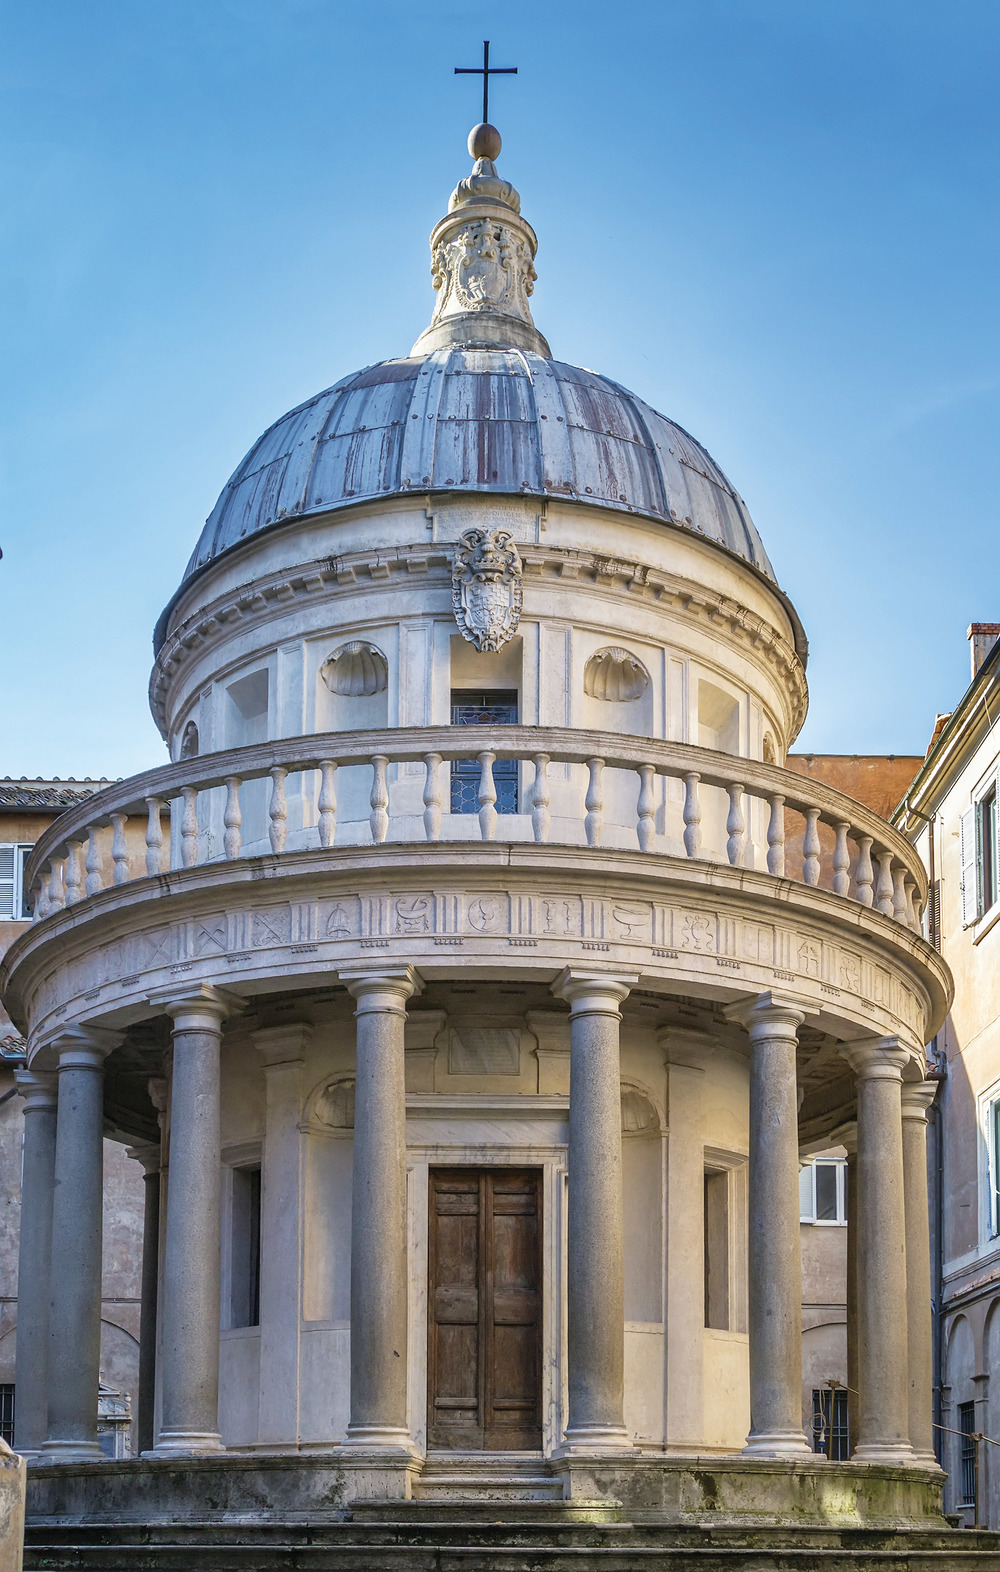 In the courtyard of San Pietro in Montorio in Rome, the Tempietto is an architectural jewel from the Renaissance that defines perfect proportion. (Borisb17 / Shutterstock.com)